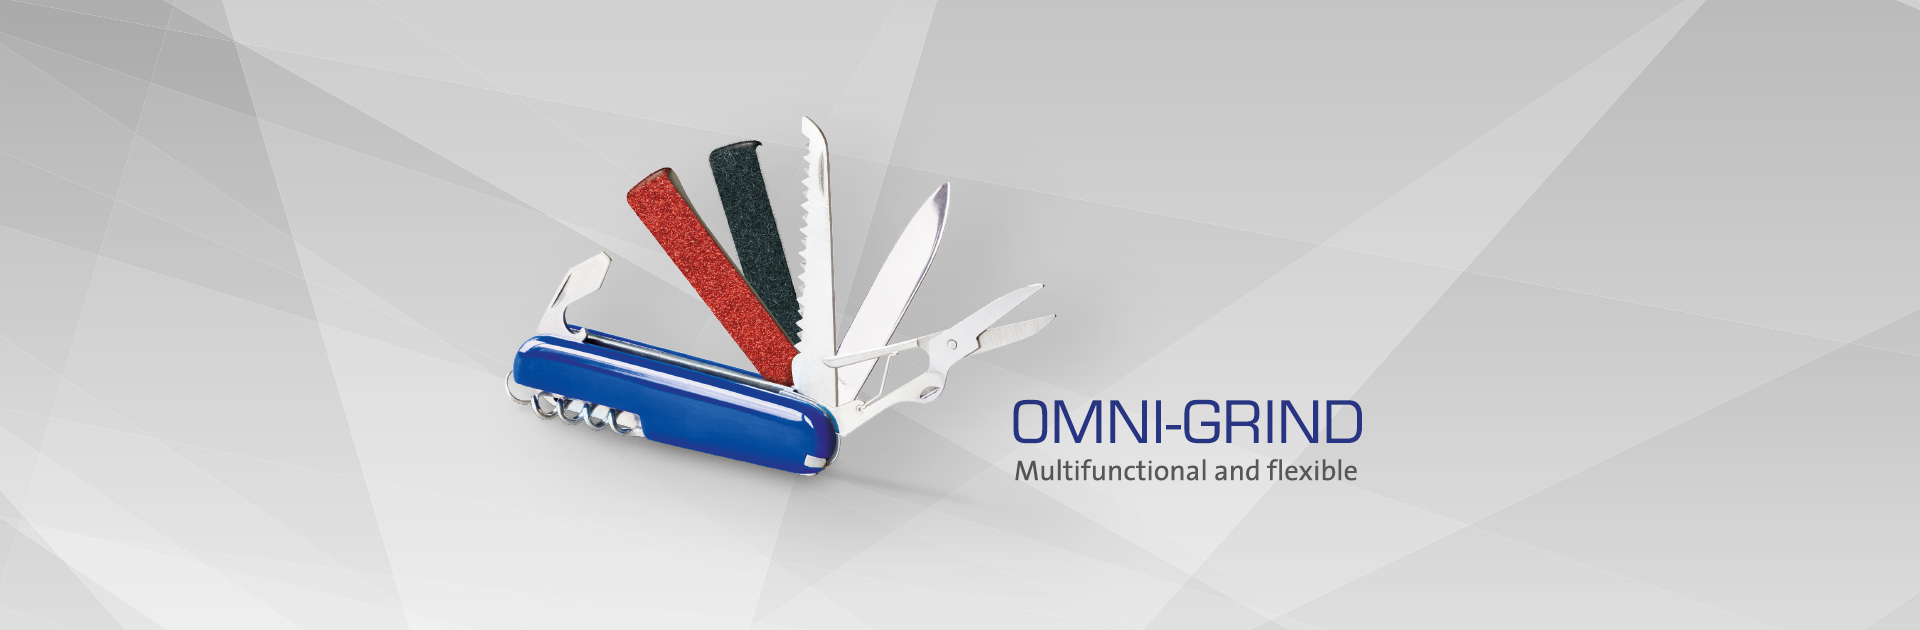 OMNI-GRIND - Multifunctional and flexible